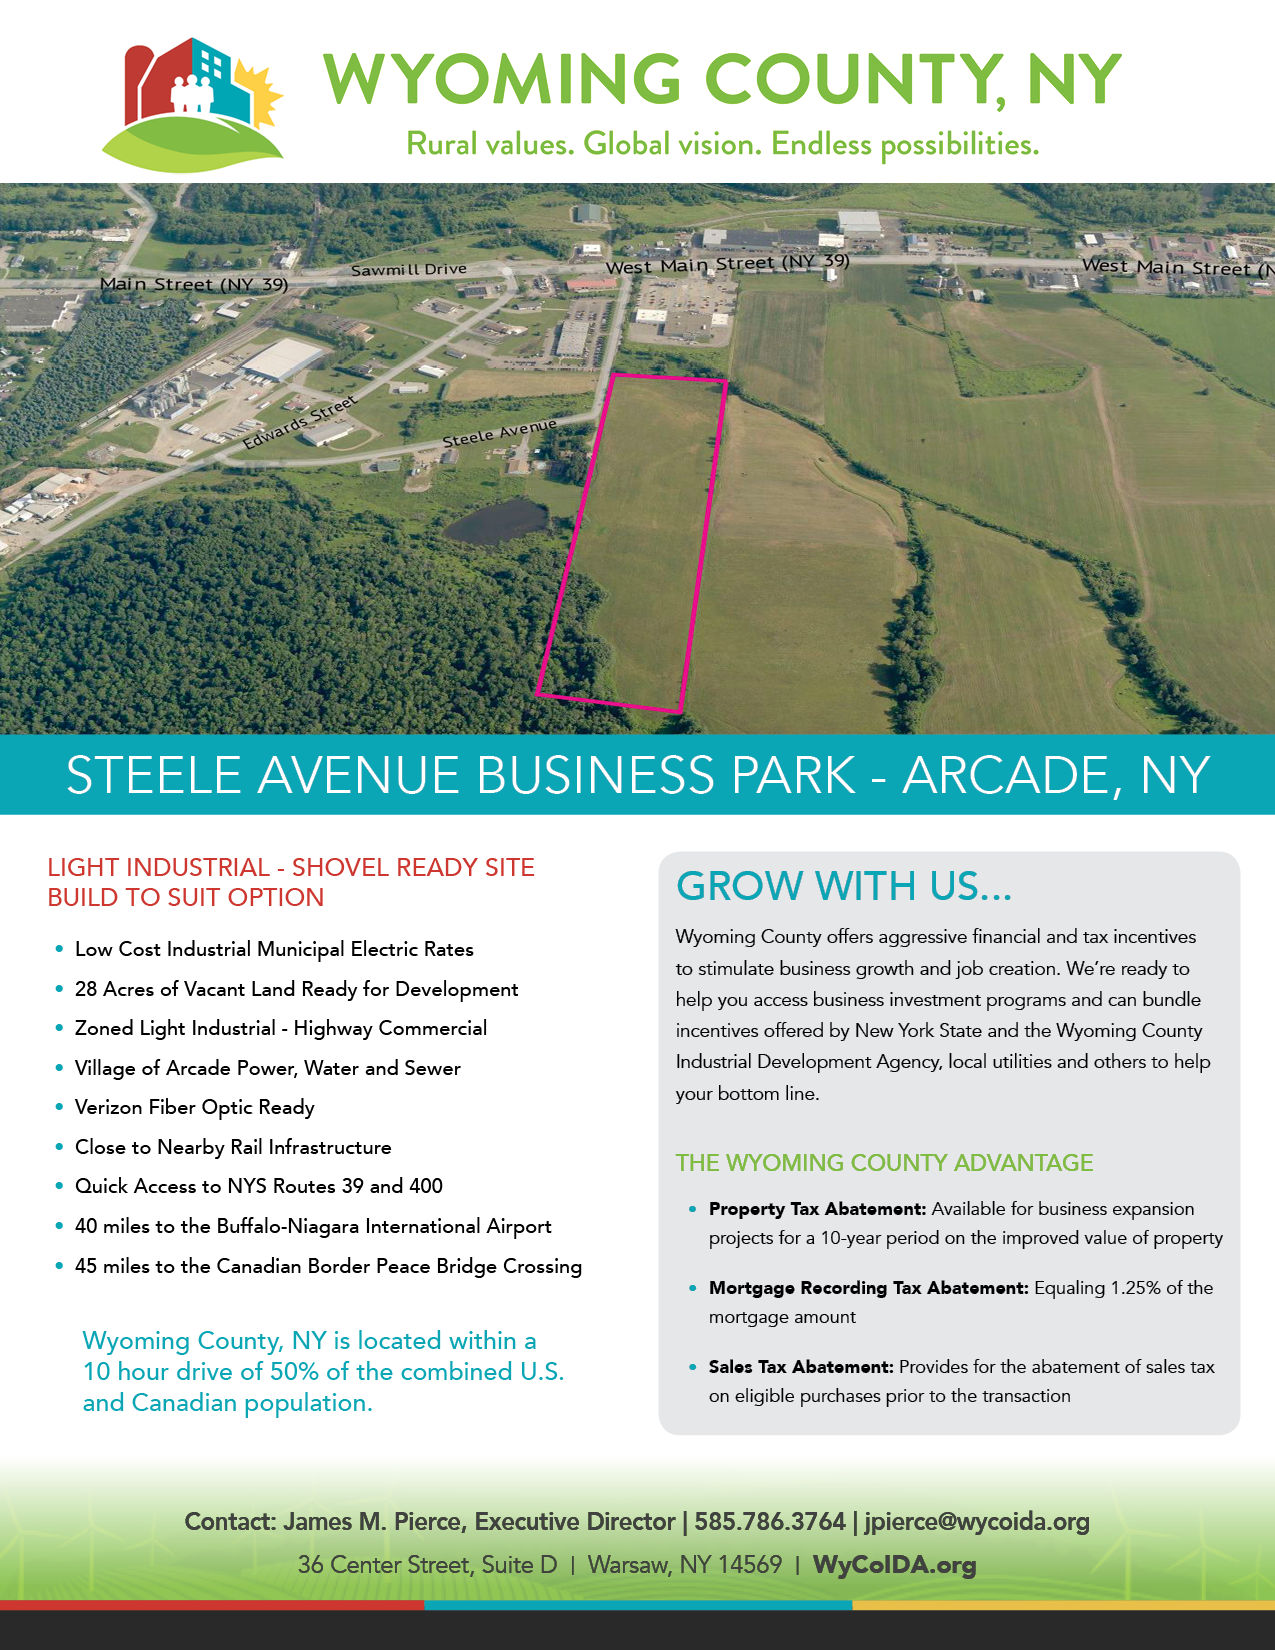 Wyoming County Steele Avenue Business Park